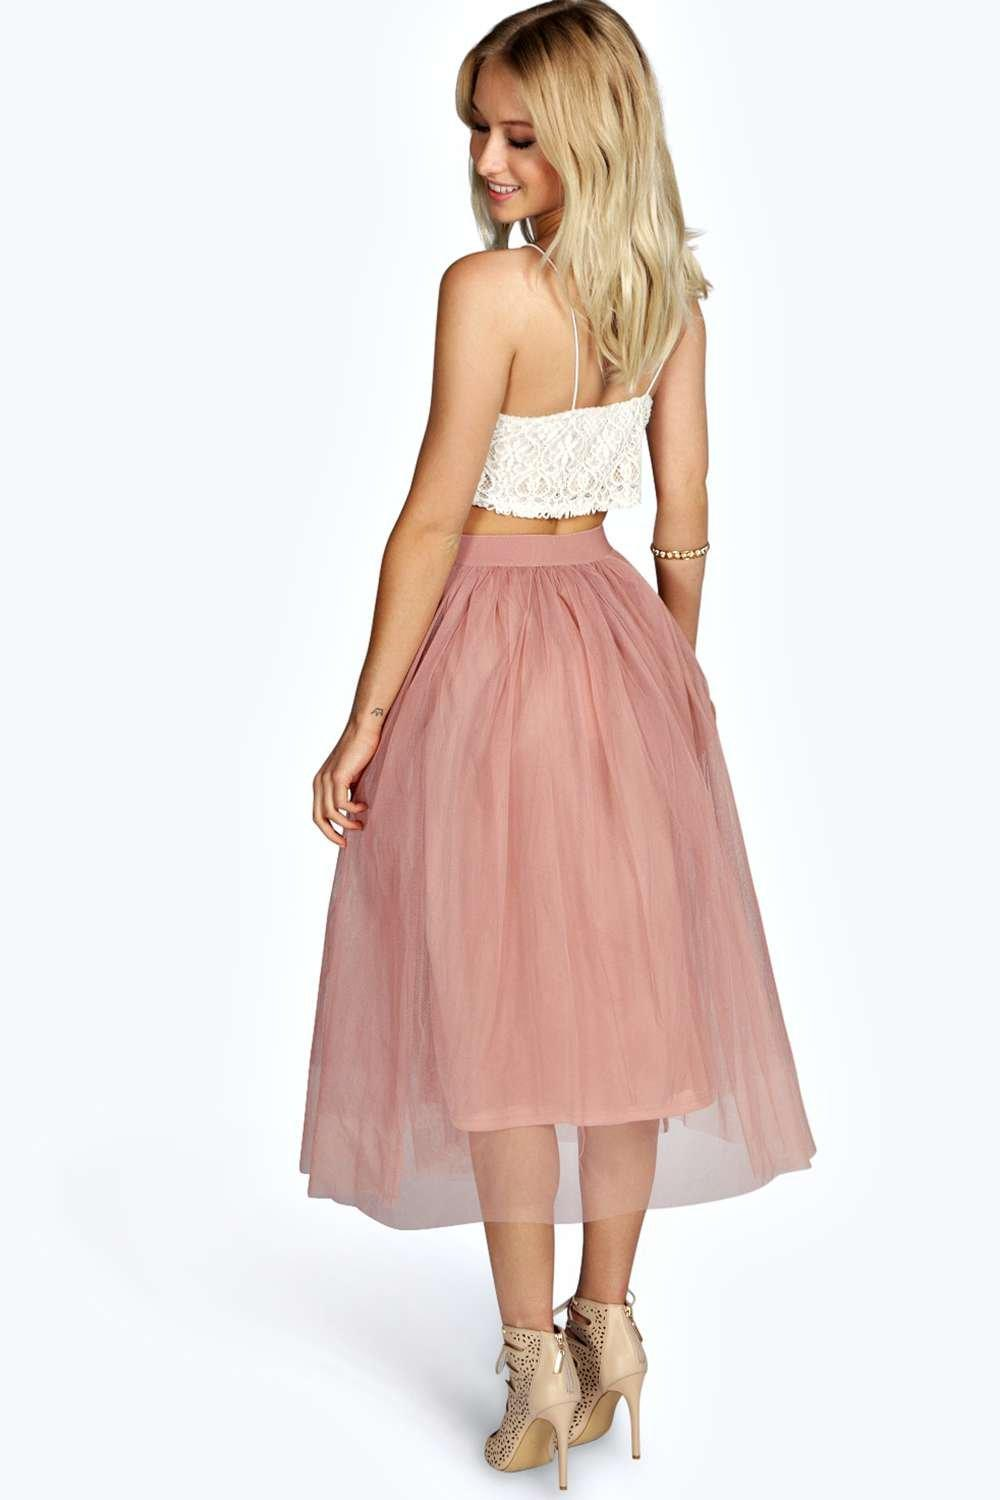 Tulle Midi Skirt | Tutu Tulle Skirt | Where to Buy Tulle Skirt